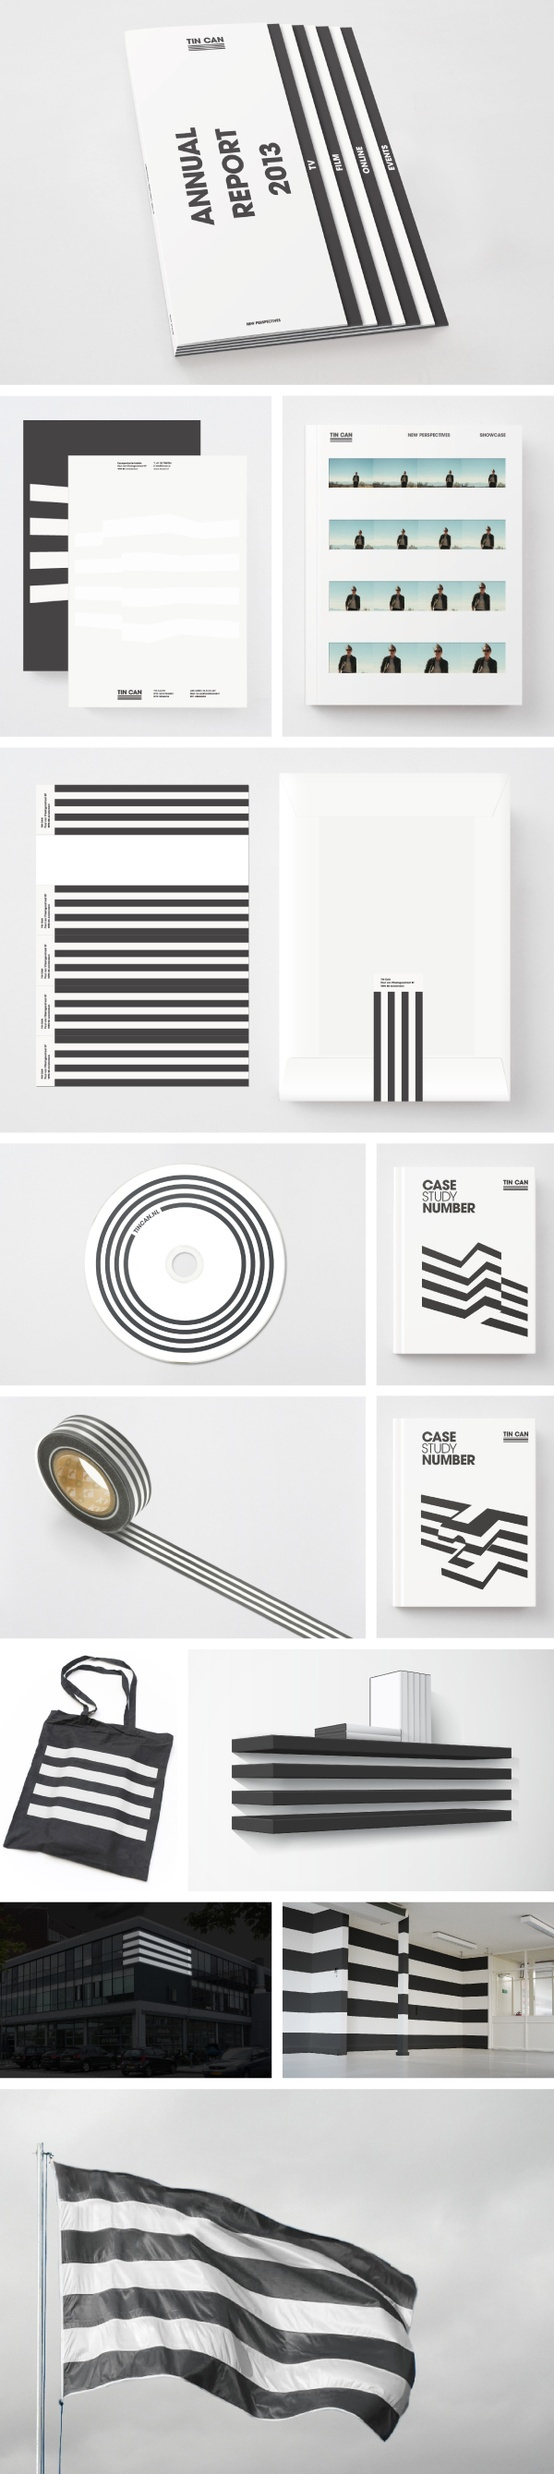 TIN CAN - visual identity by Leon Dijkstra COOEE, via Behance